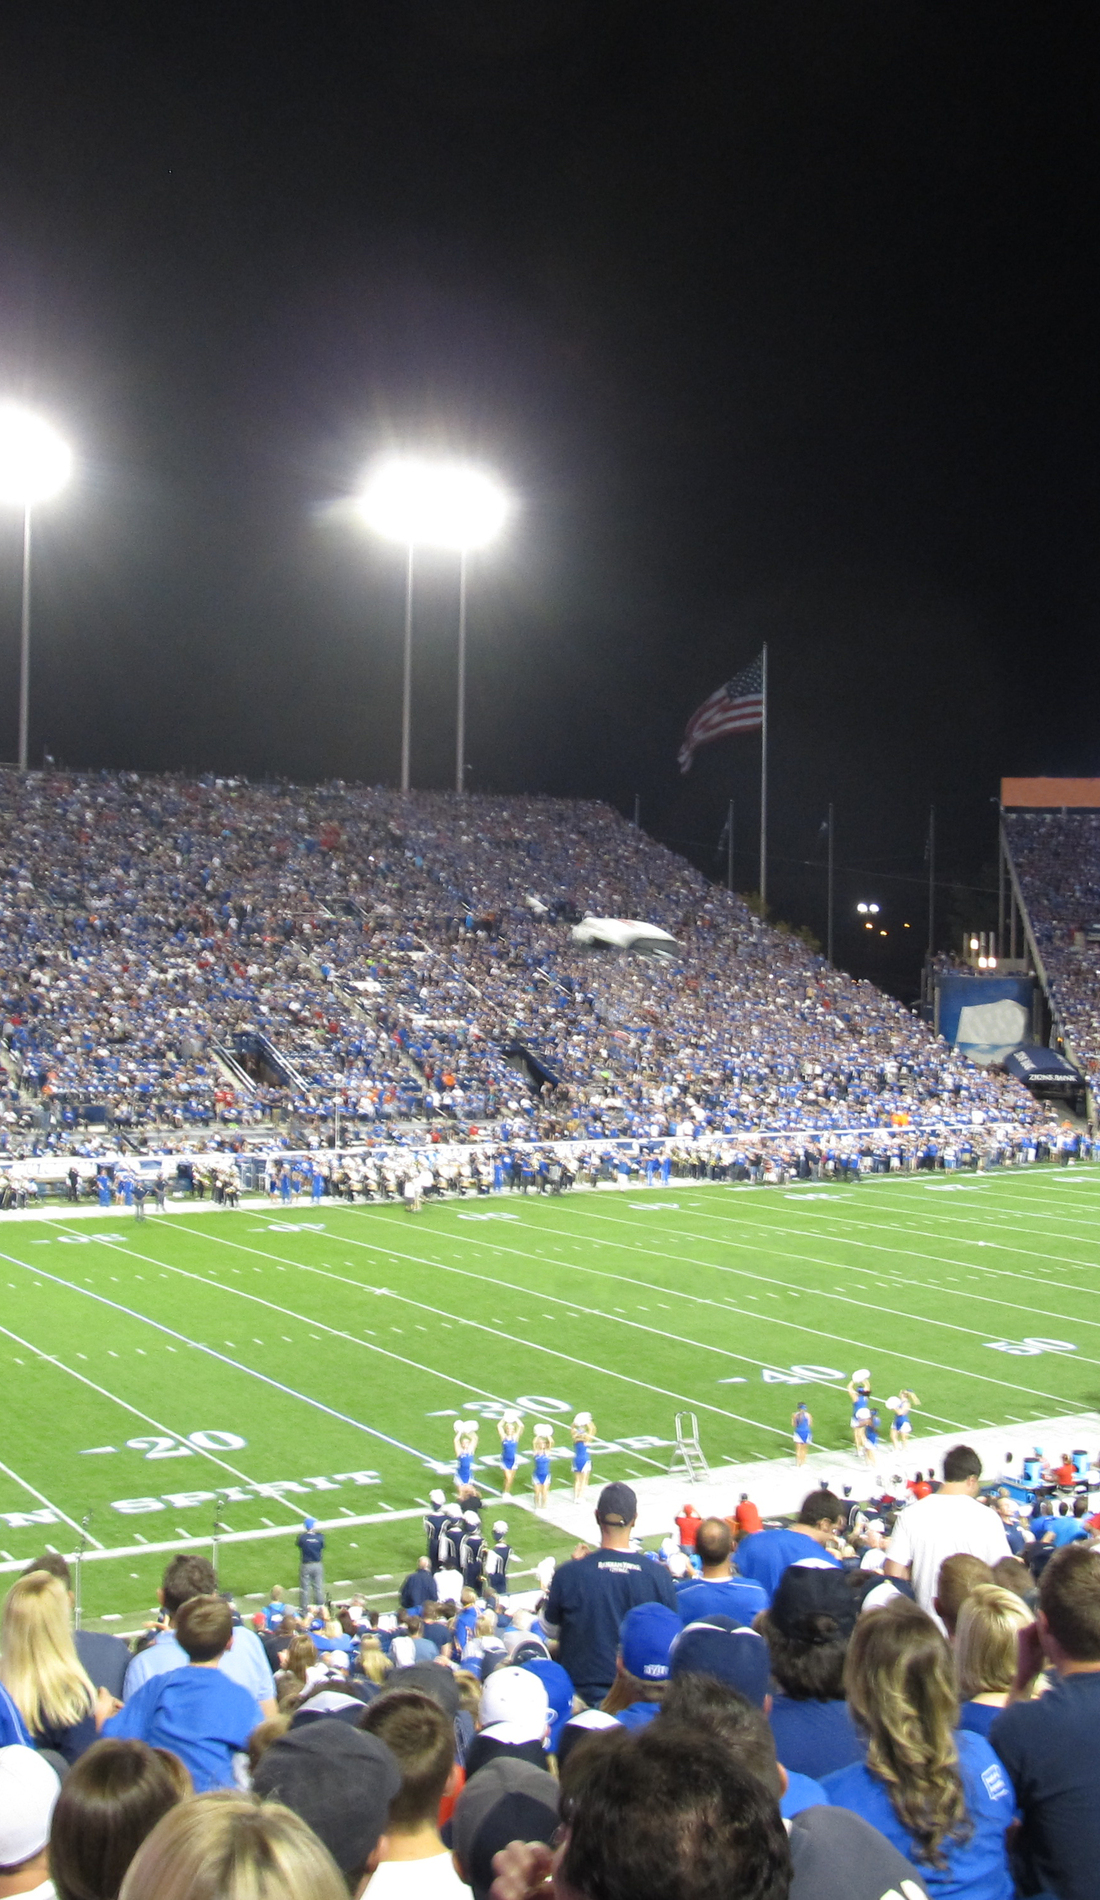 A BYU Cougars Football live event